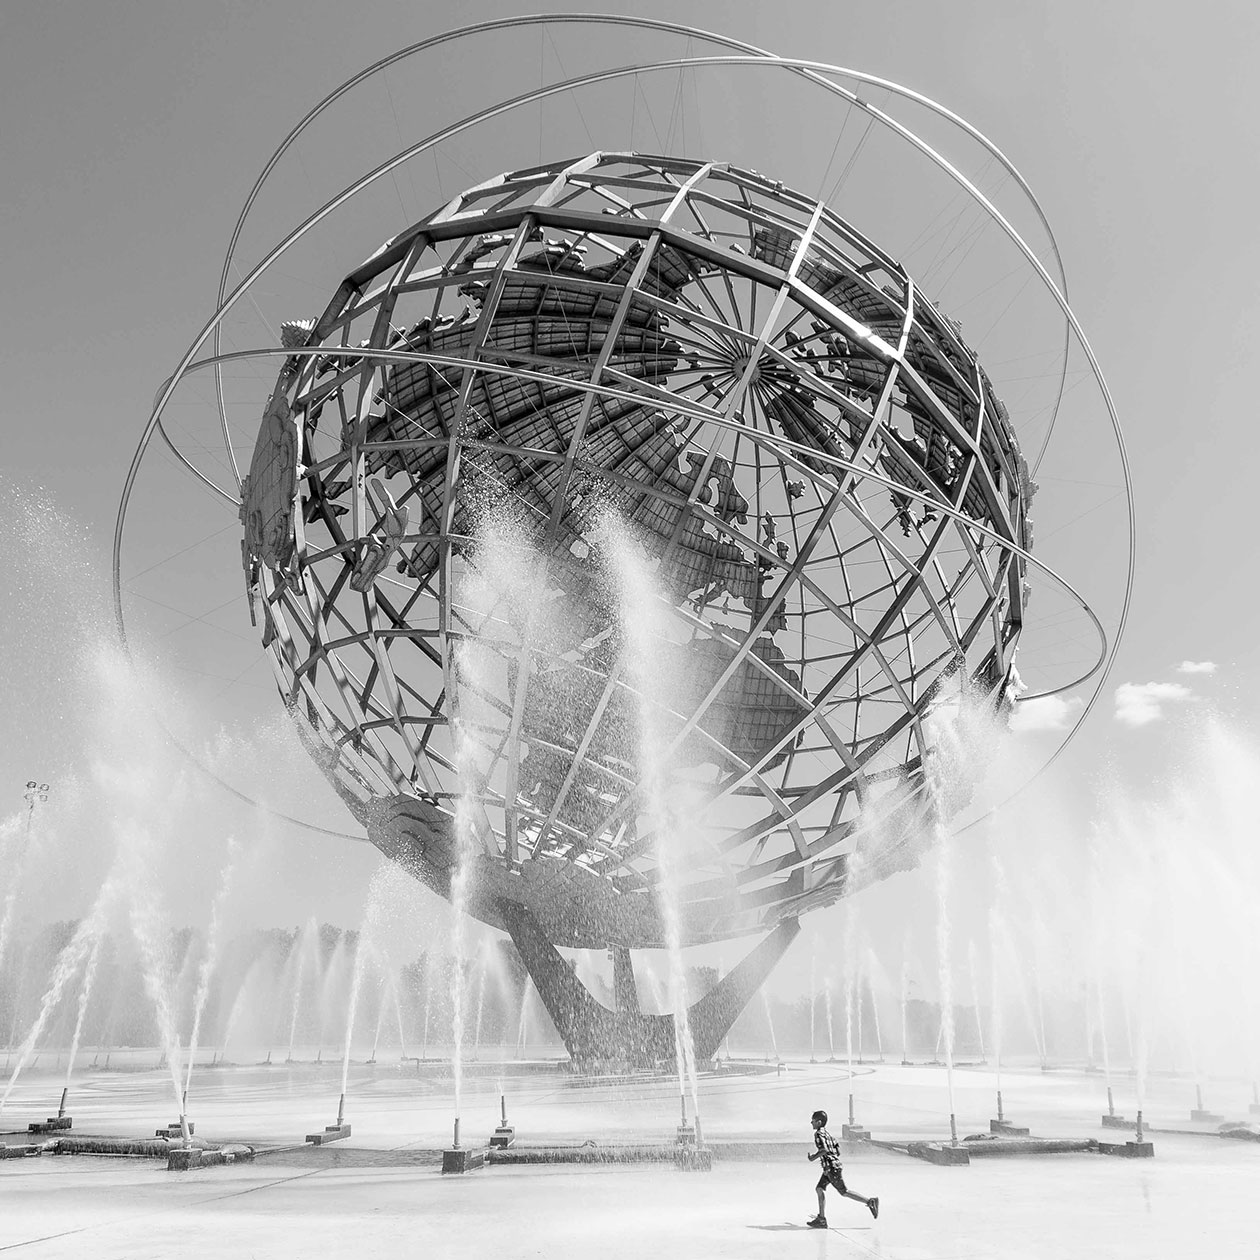 the Unisphere, stainless steel globe in Flushing Meadows–Corona Park